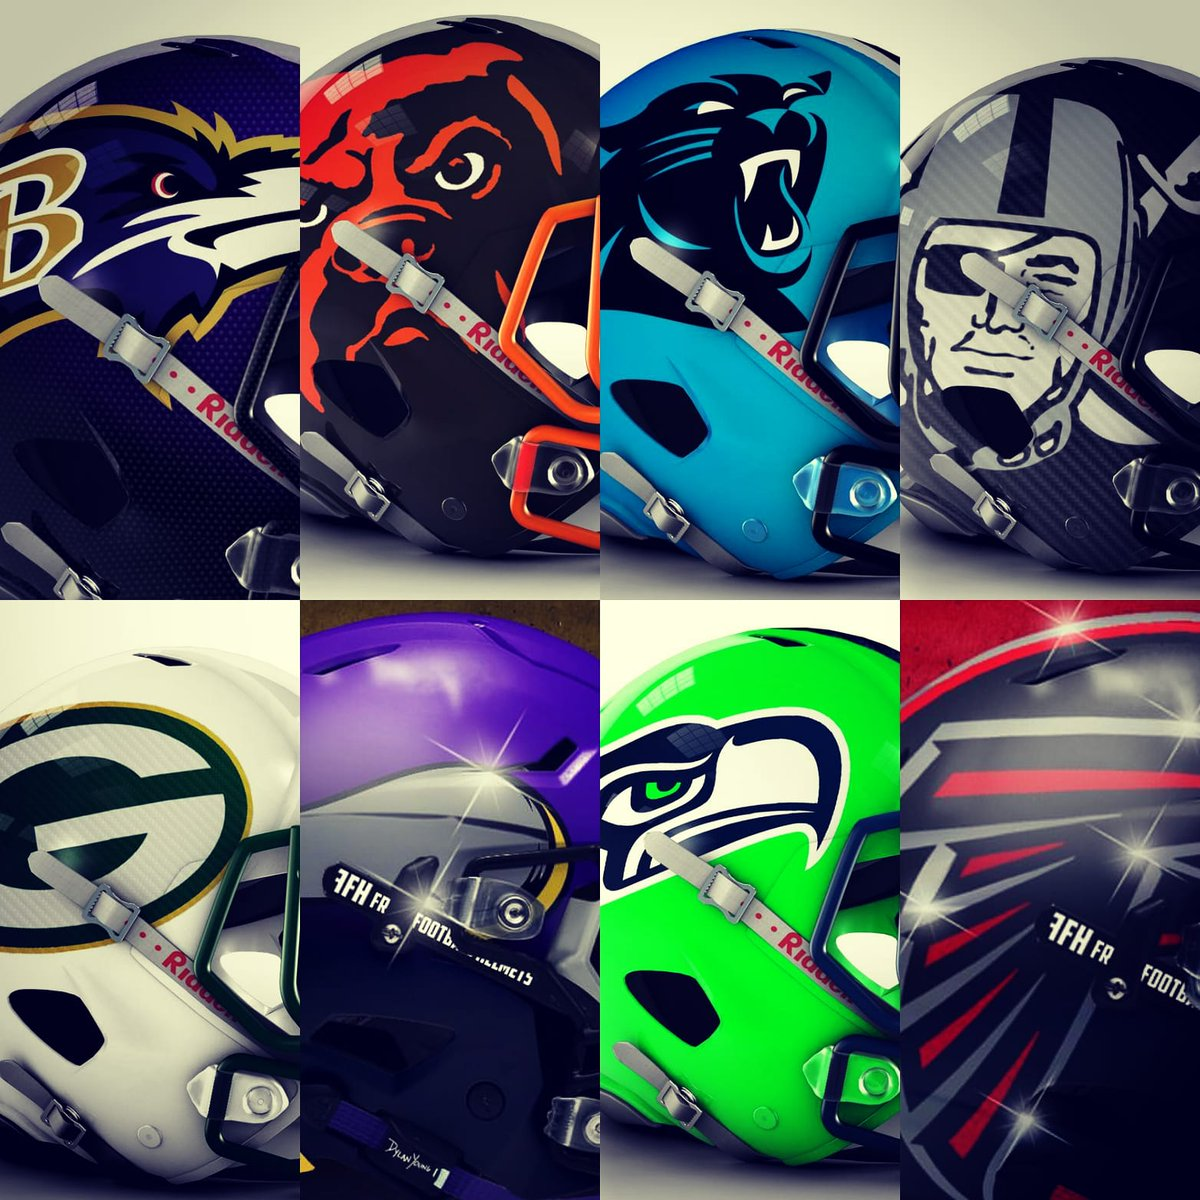 NFL KICKS OFF AT 1:00 WITH GAMES ON CBS AND FOX BALTIMORE VS Cleveland,  LV RAIDERS VS CAROLINA , GREEN Bay VS Minn and Seattle VS Atl plus more Tune in or turn on Redzone !!! #djstatusphere #louscannon  #schweppervescence  #hiphop  #NFL #FOOTBALL  #CBS #FOX #nflnetwork #RAVENS